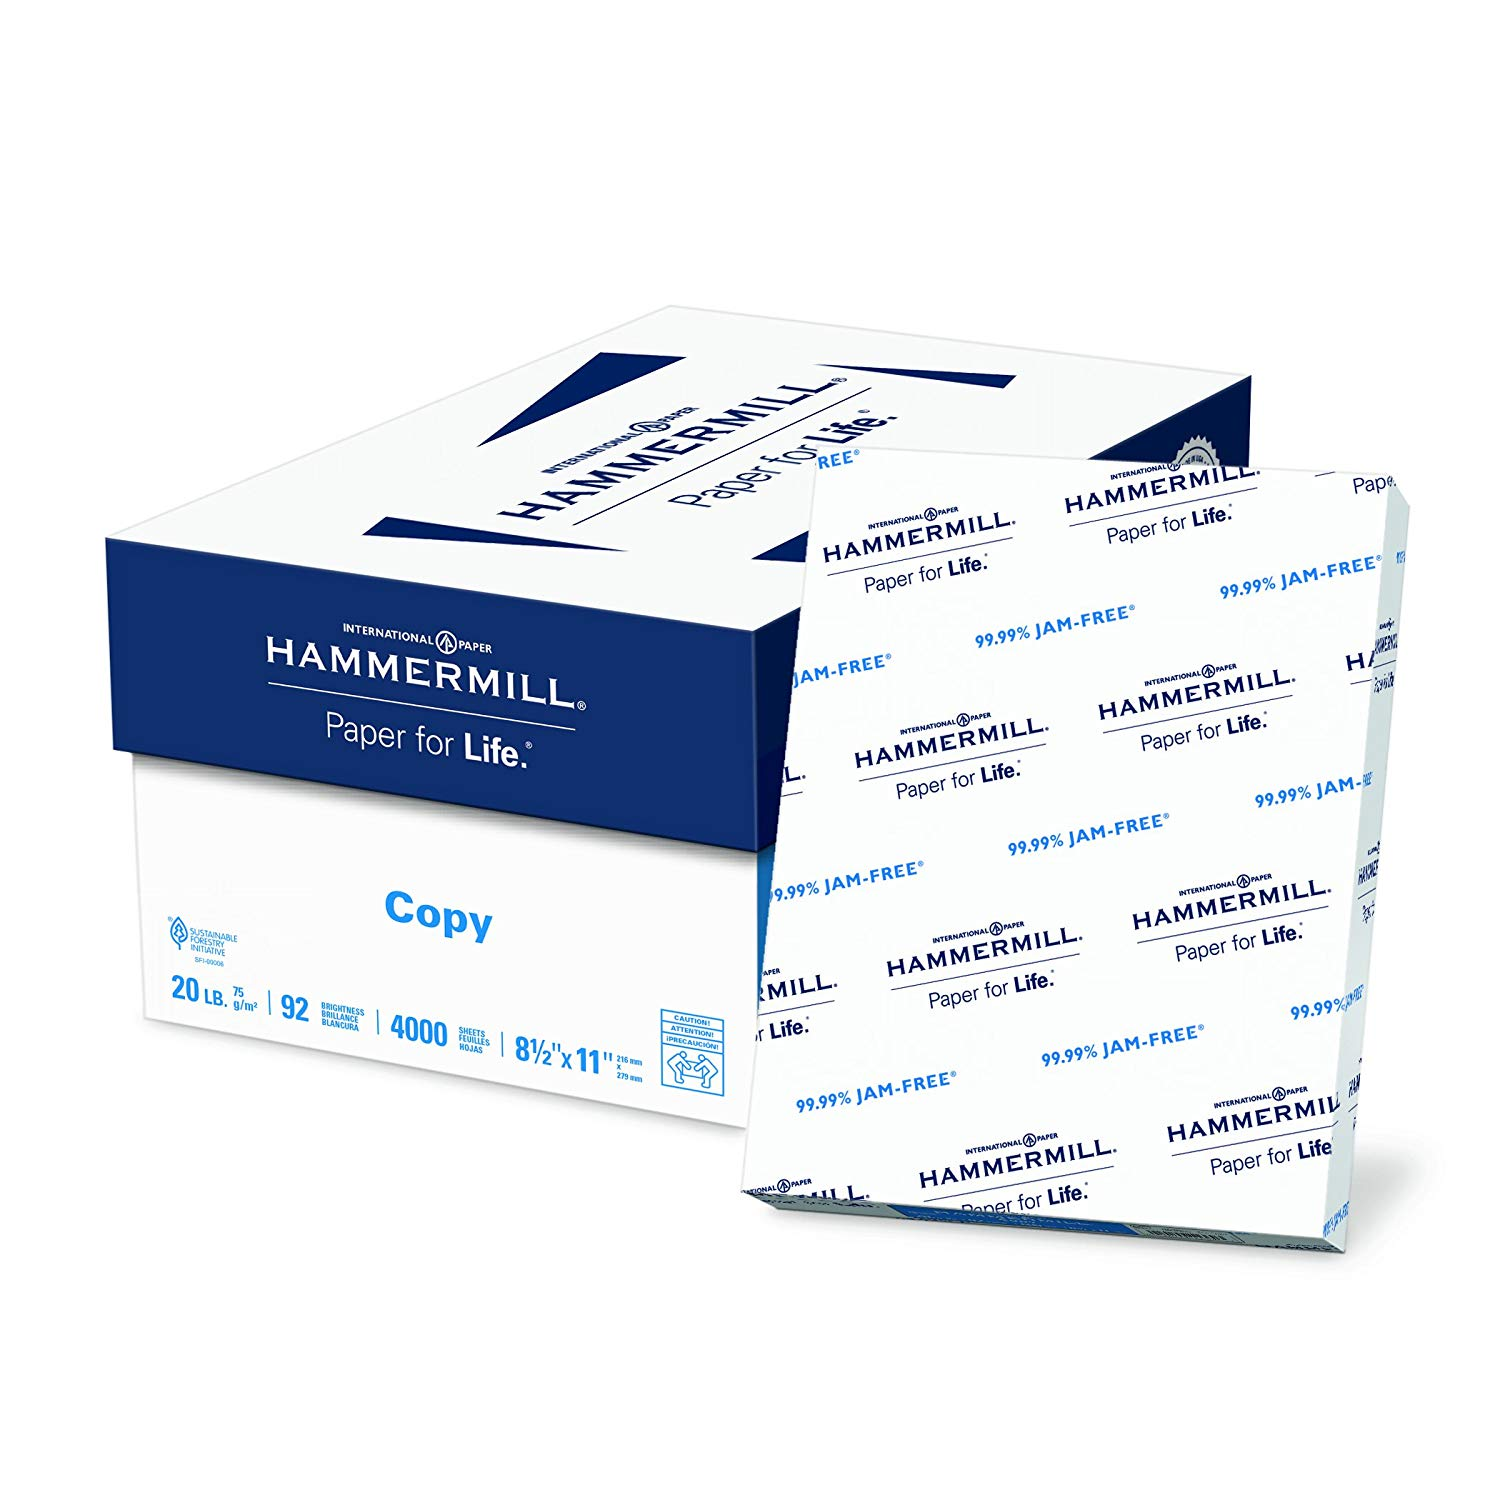 Hammermill Paper 8 Ream Case / 4,000 Sheets only $25.99! (was $36.99)